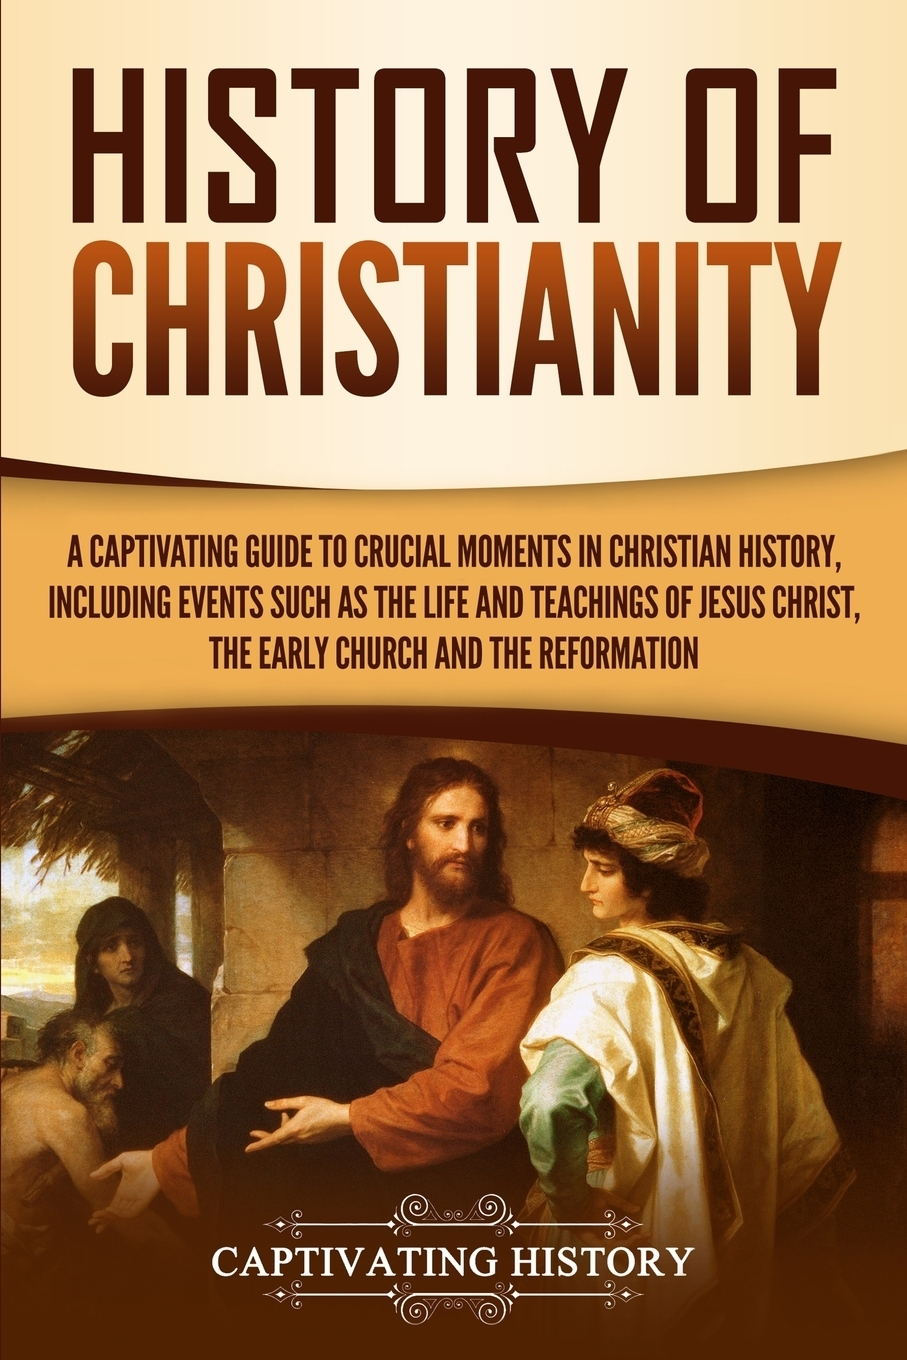 Captivating History History of Christianity. A Captivating Guide to Crucial Moments in Christian History, Including Events Such as the Life and Teachings of Jesus Christ, the Early Church, and the Reformation the rose the history of the world's favourite flower in 40 captivating roses with classic texts and rare beautiful prints